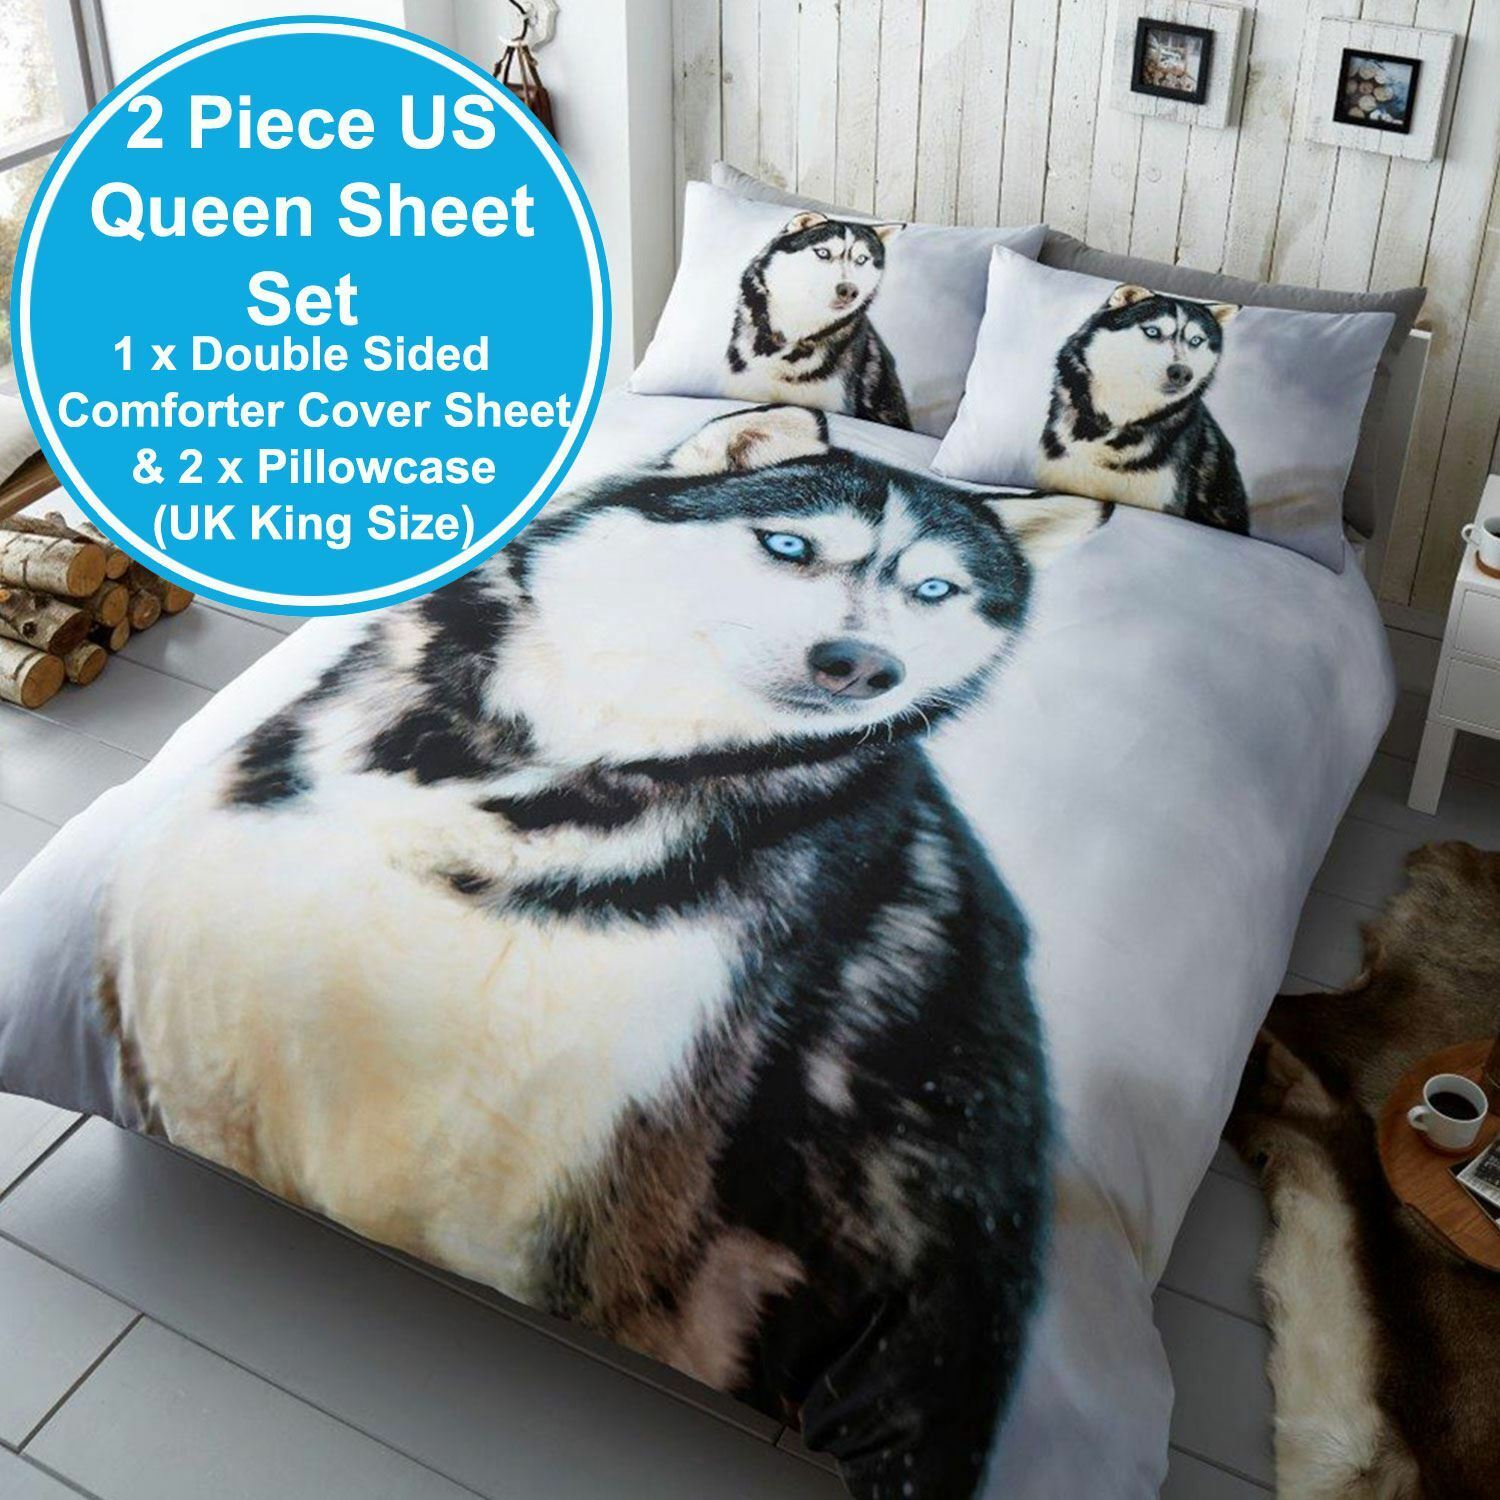 HUSKY DOG 2 PIECE UK KING   US QUEEN DOUBLE SIDED SHEET & PILLOWCASE SET NEW